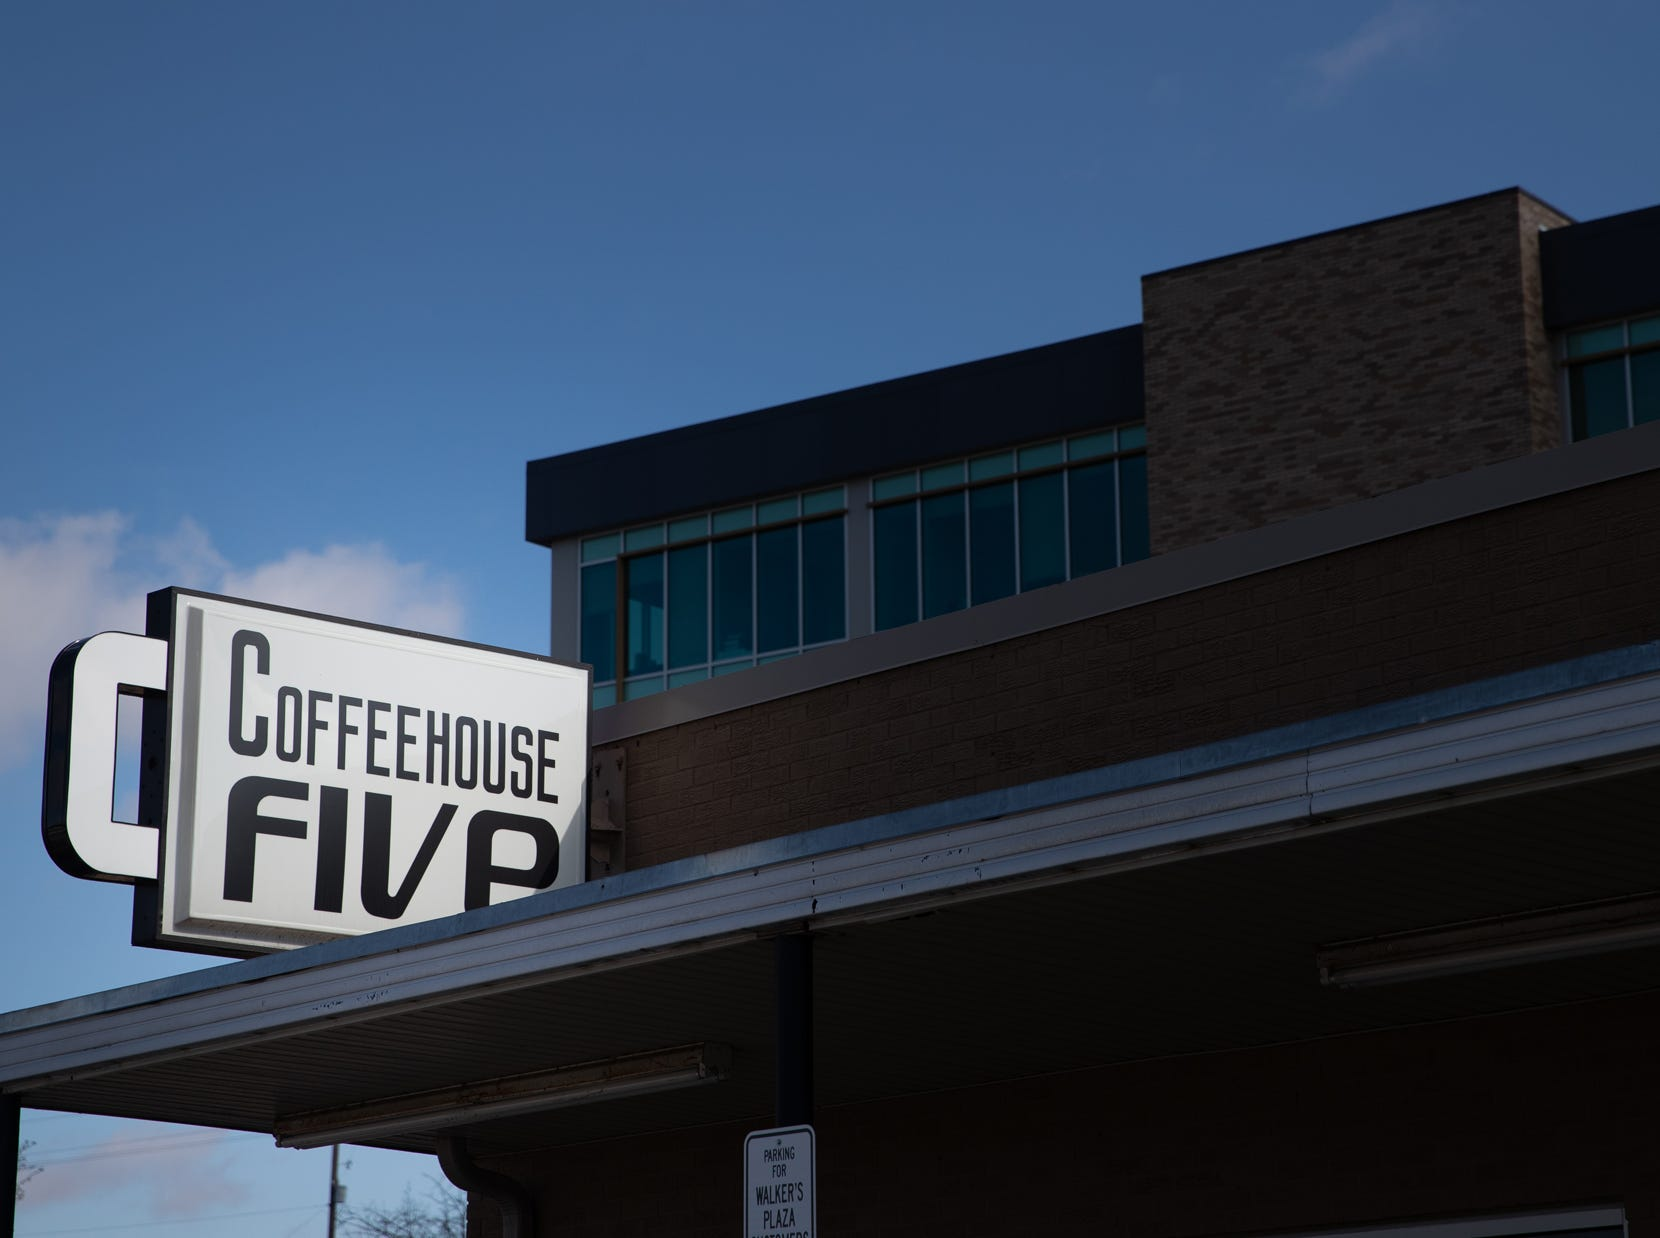 Coffeehouse Five, located on Market Street in Greenwood, Ind. on Wednesday, Feb. 13, 2019.